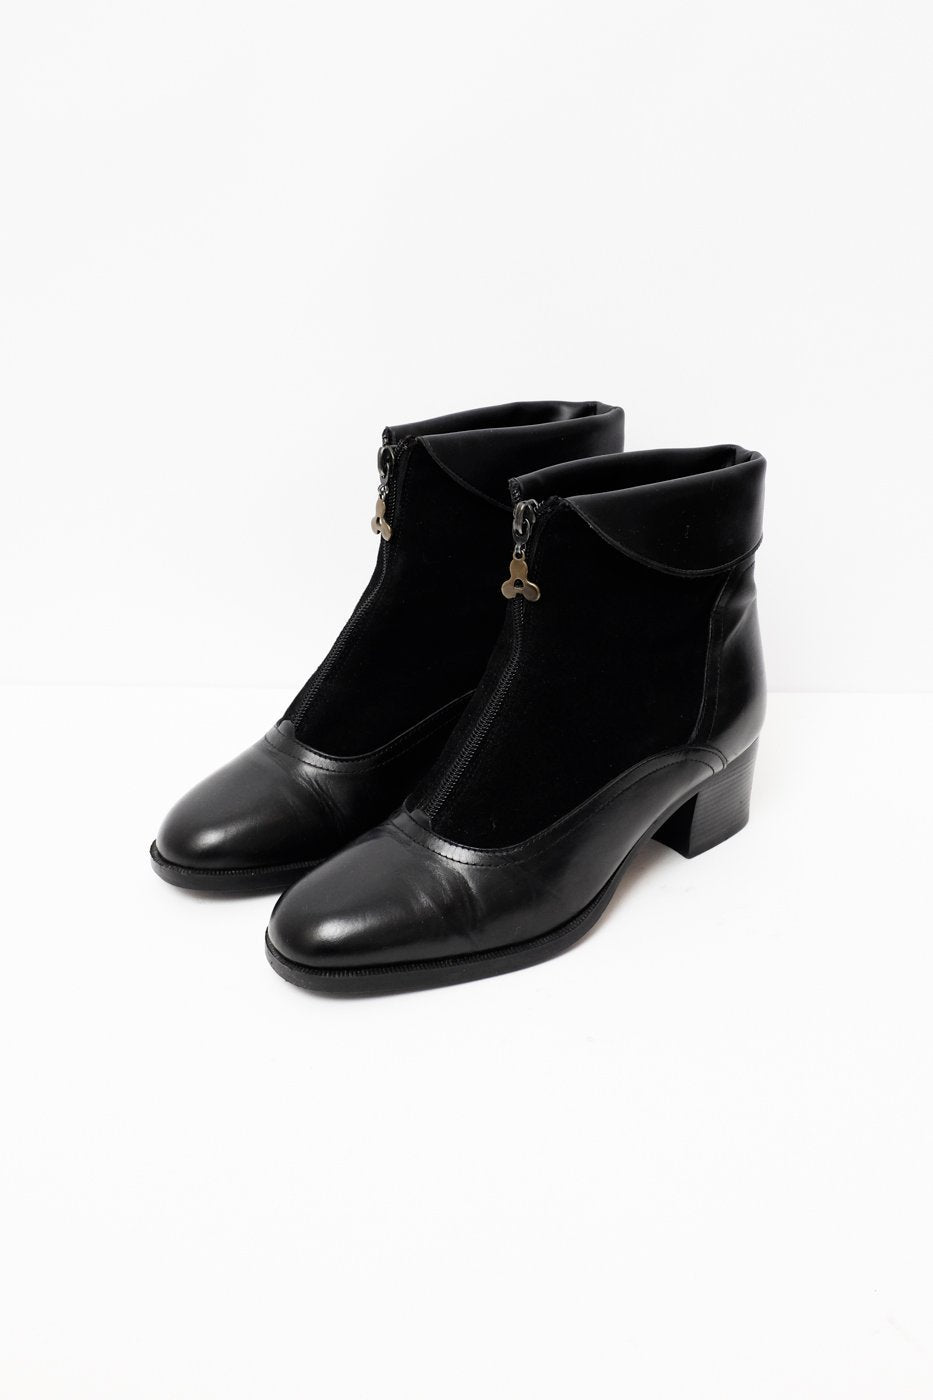 0293_ZIP BLACK LEATHER SUEDE BOOTIES